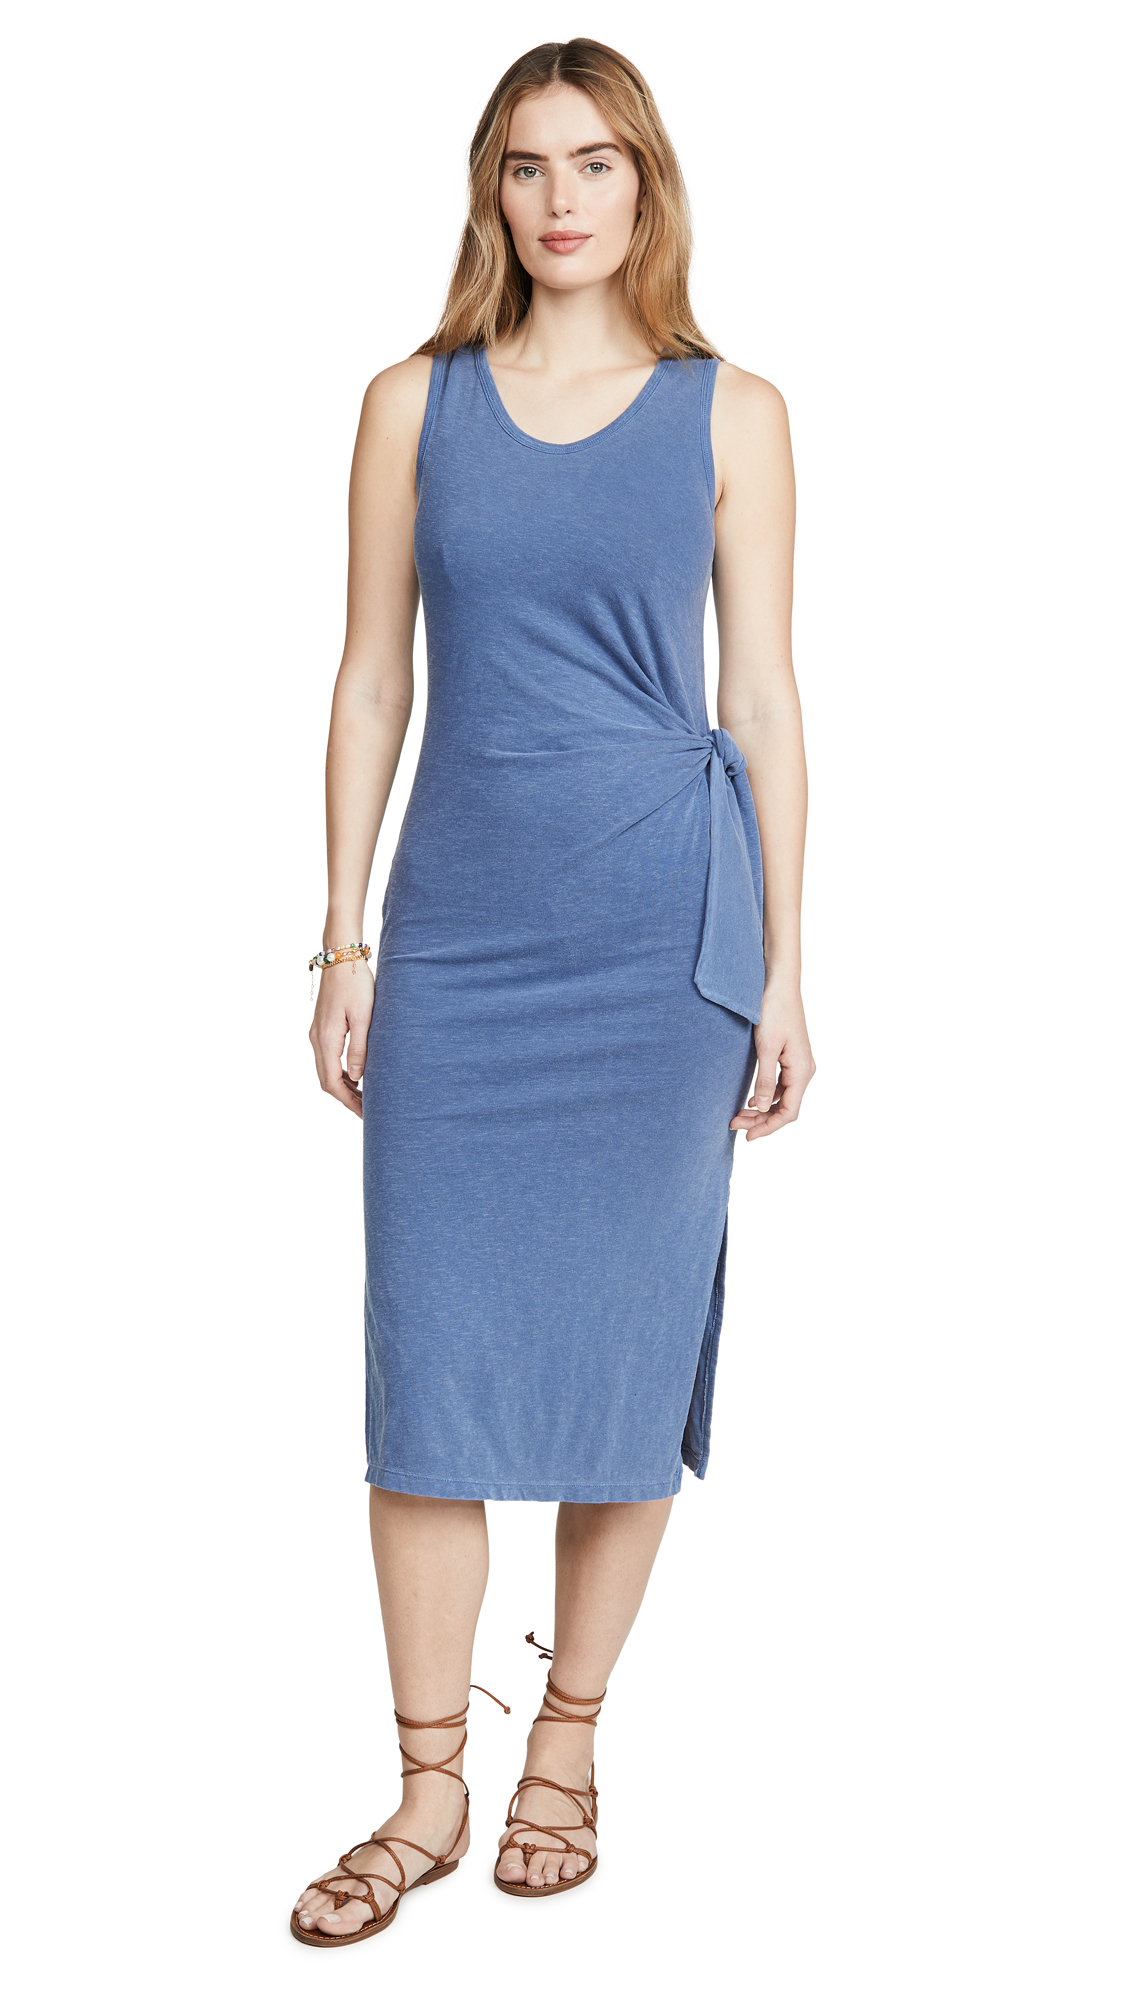 SUNDRY Knotted Dress